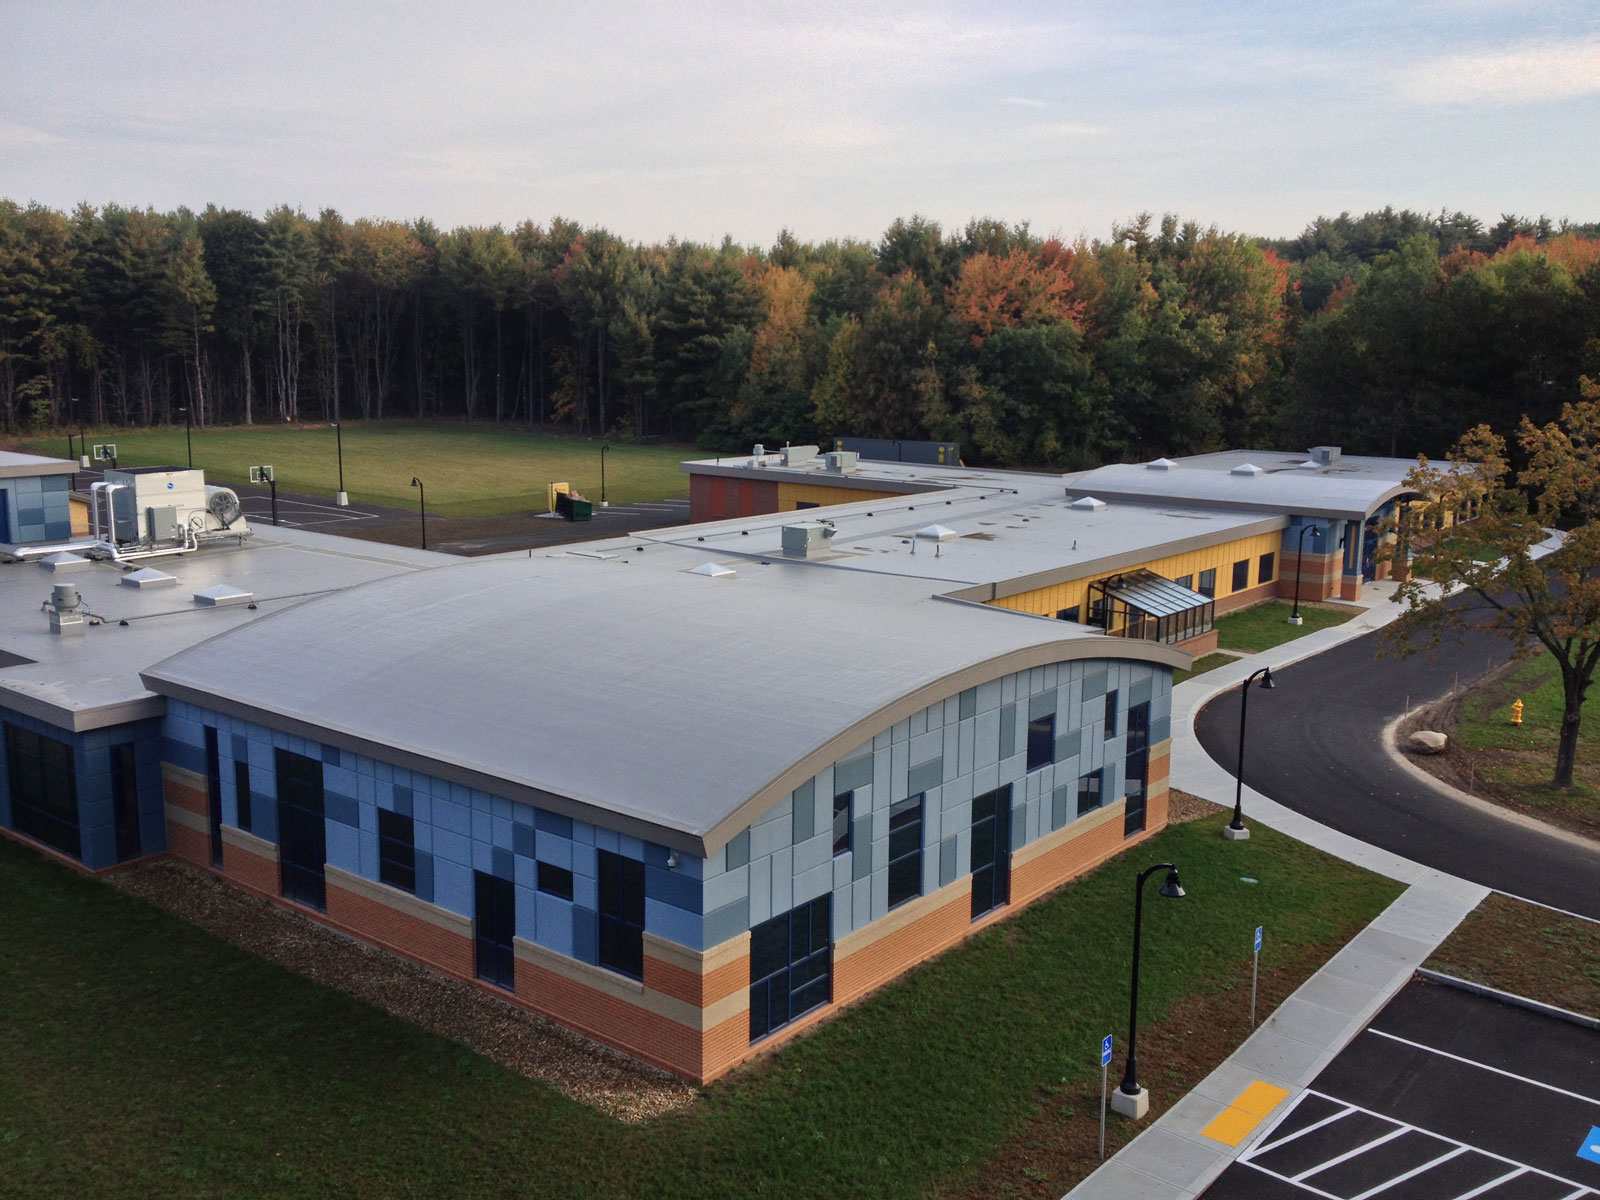 Boys and Girls Club Fitchburg-Leominster roofing project - 1